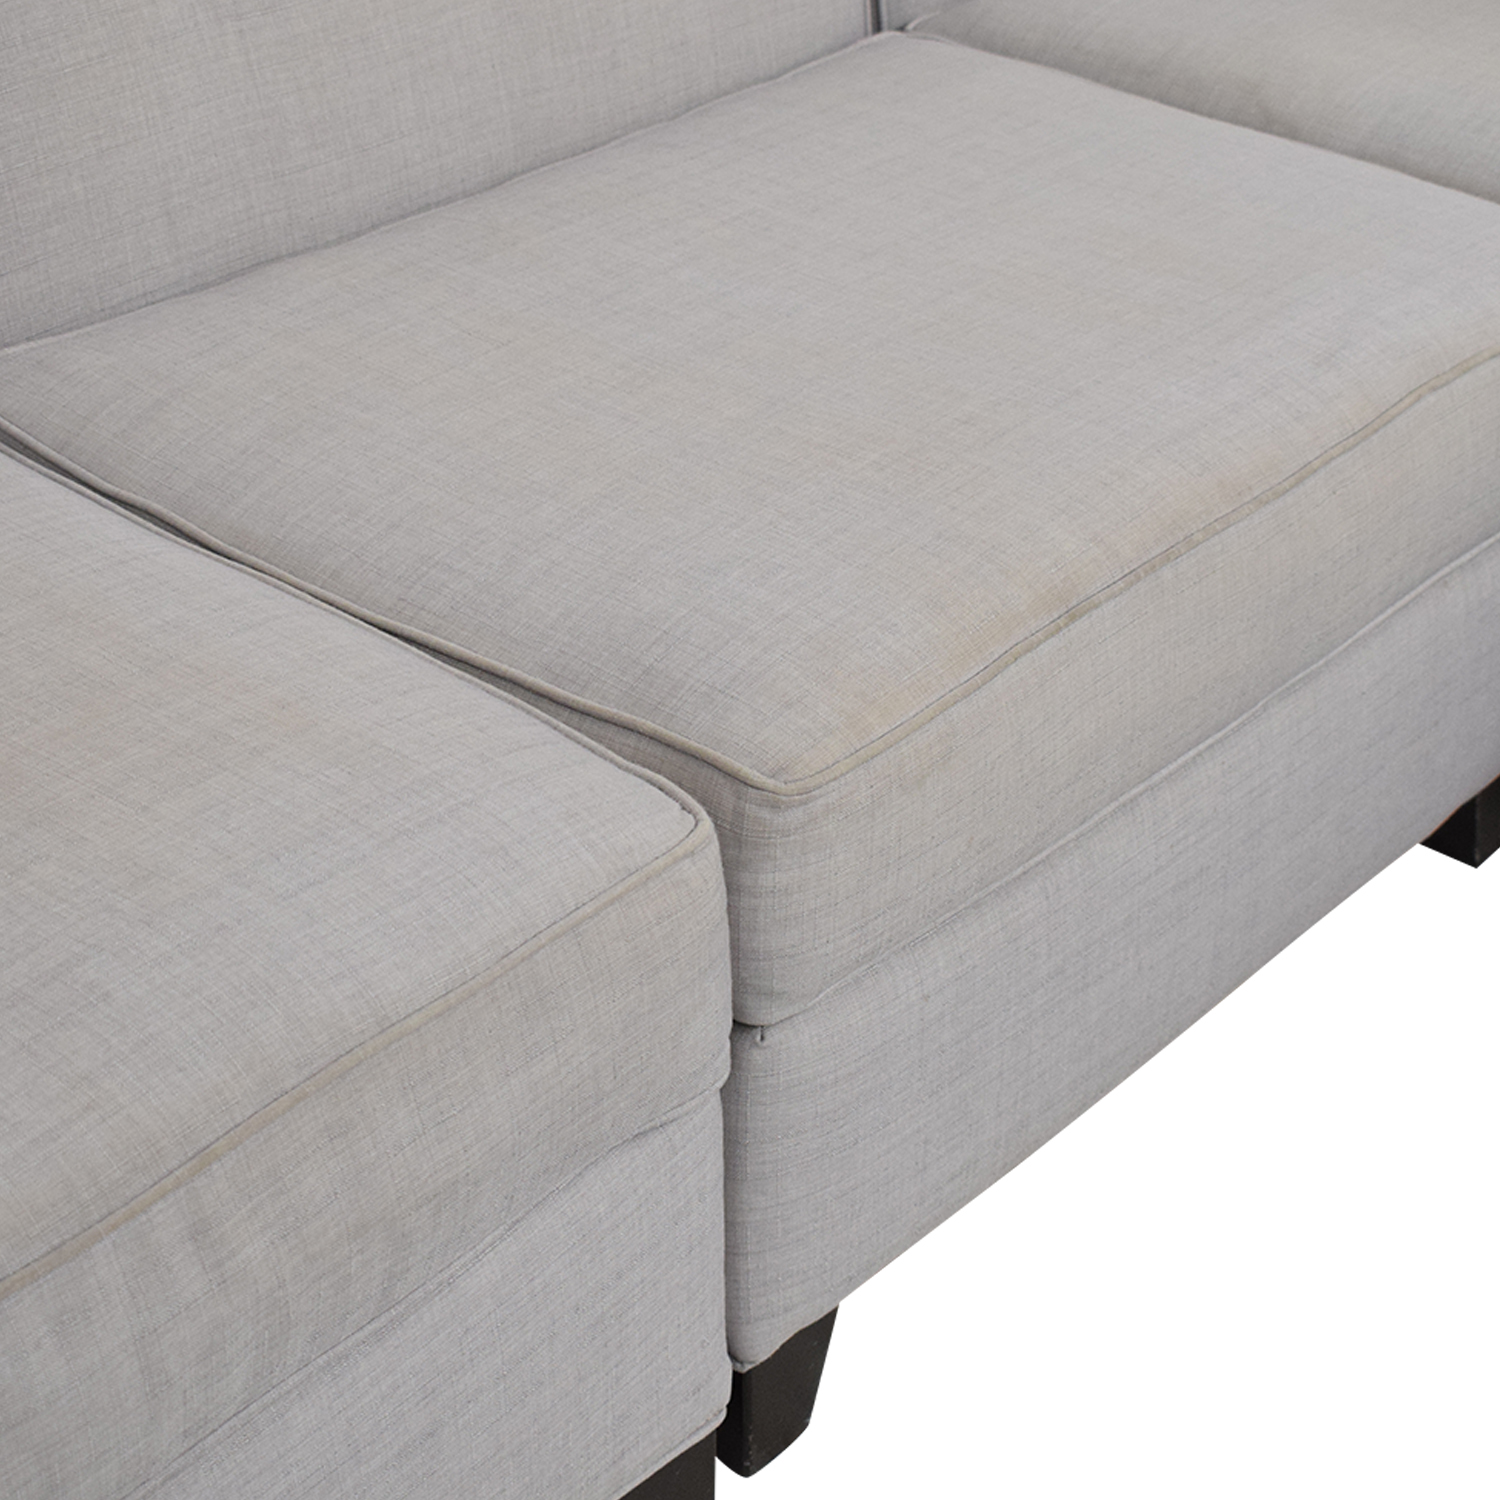 Macy's Three Piece Sectional Sofa / Sectionals